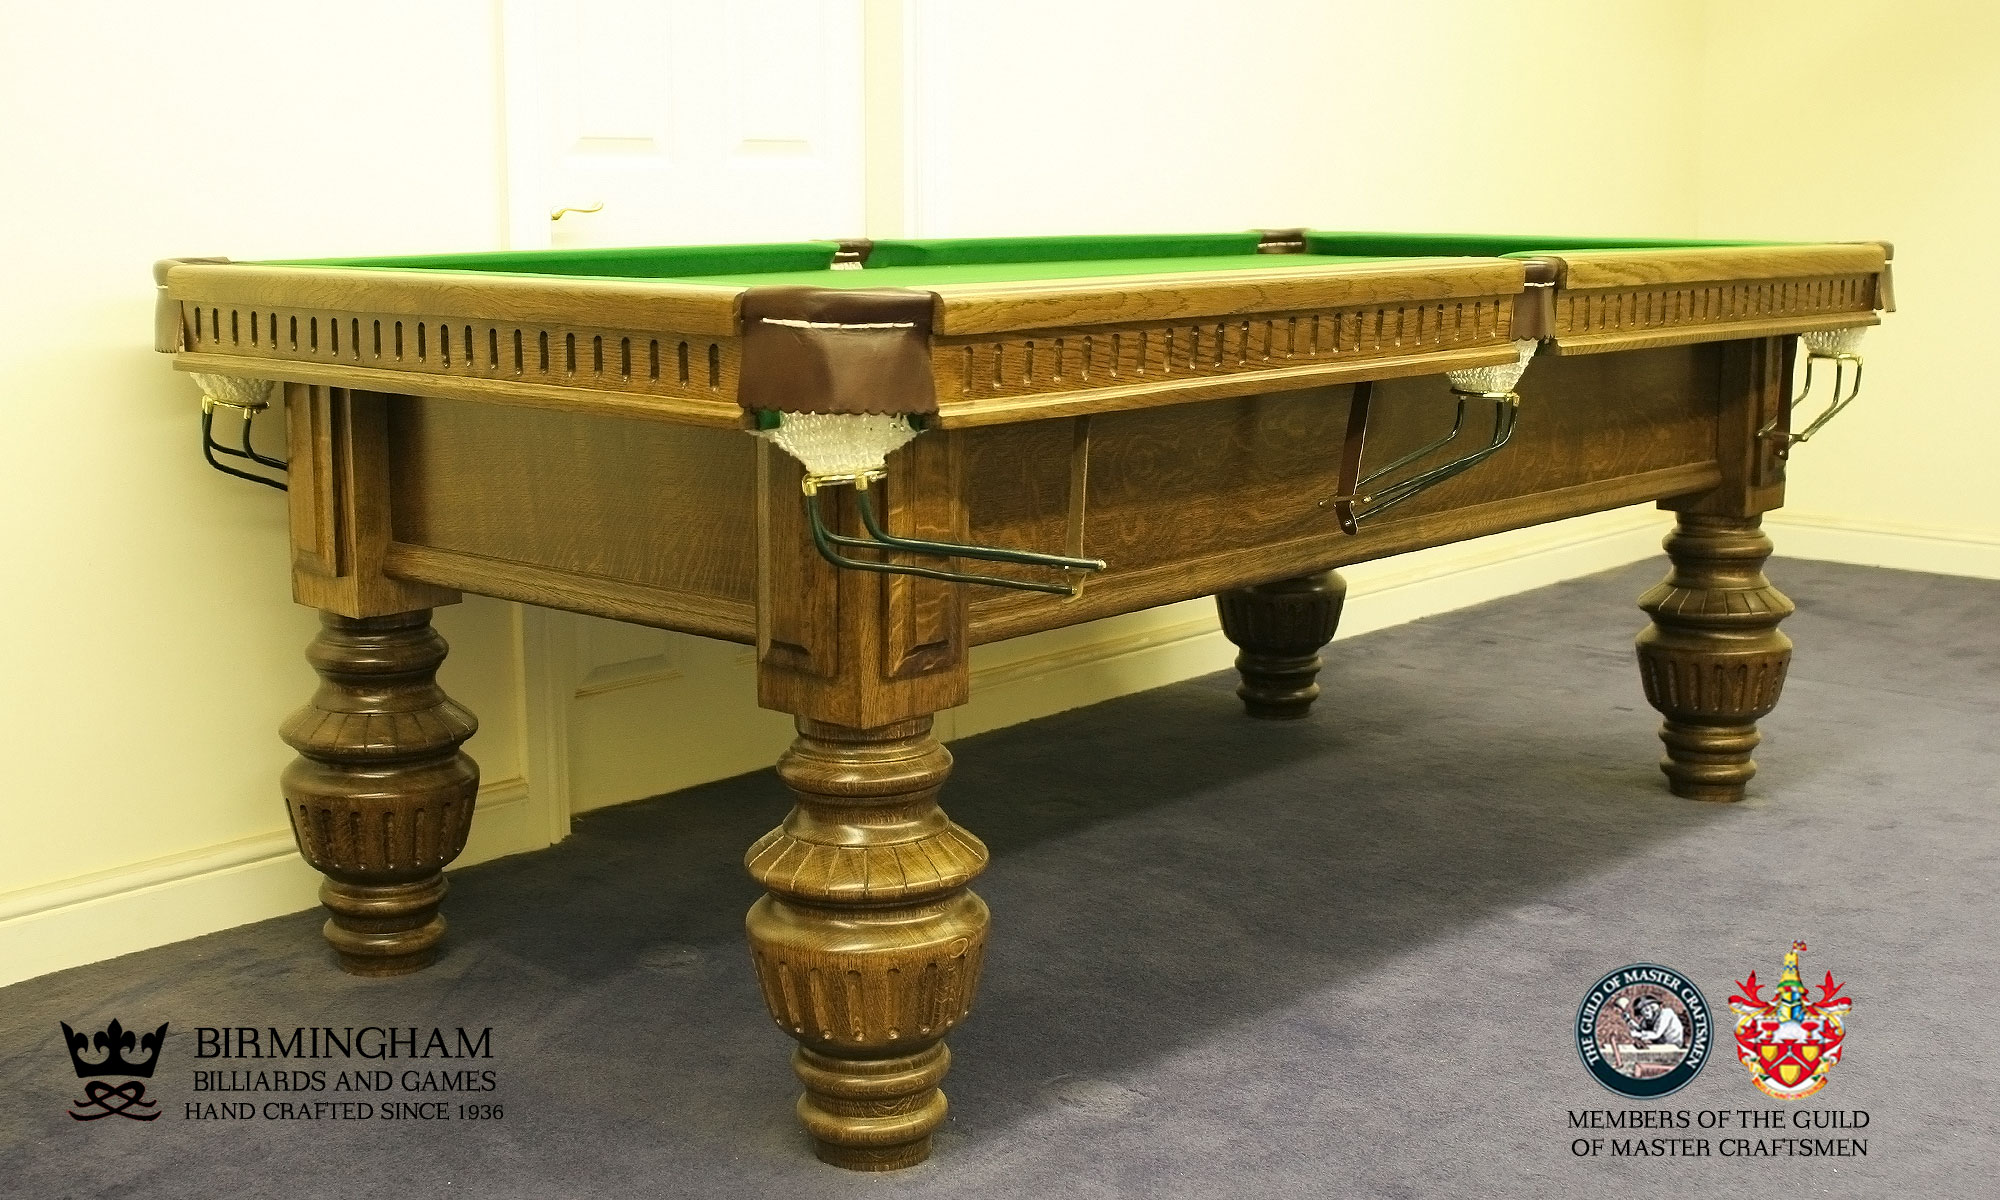 The Classic monarch handmade pool table